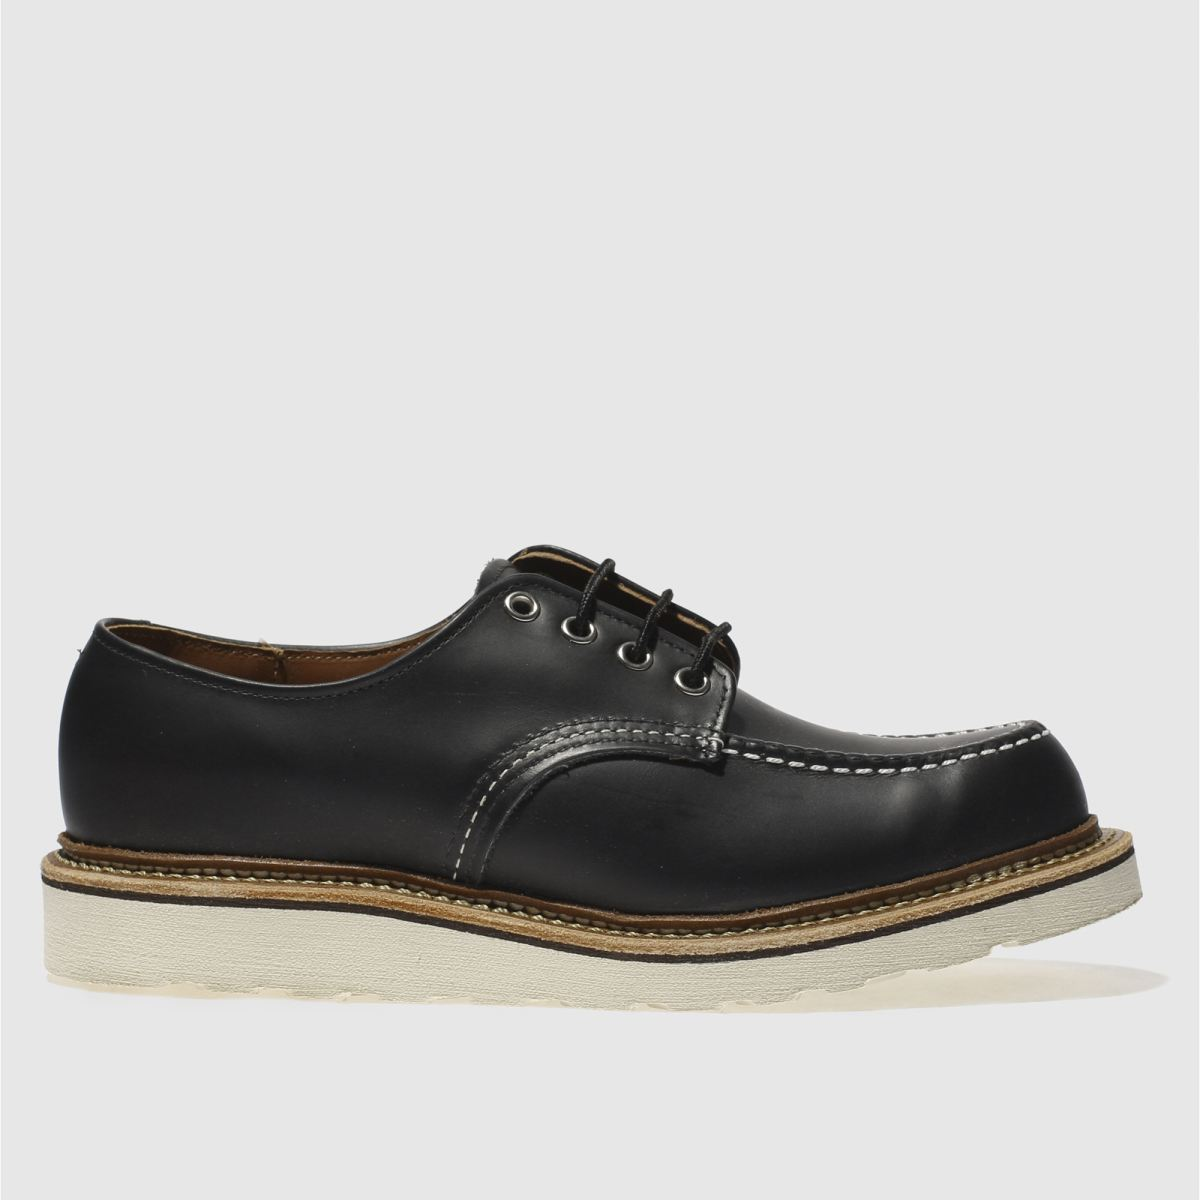 red wing black classic oxford shoes